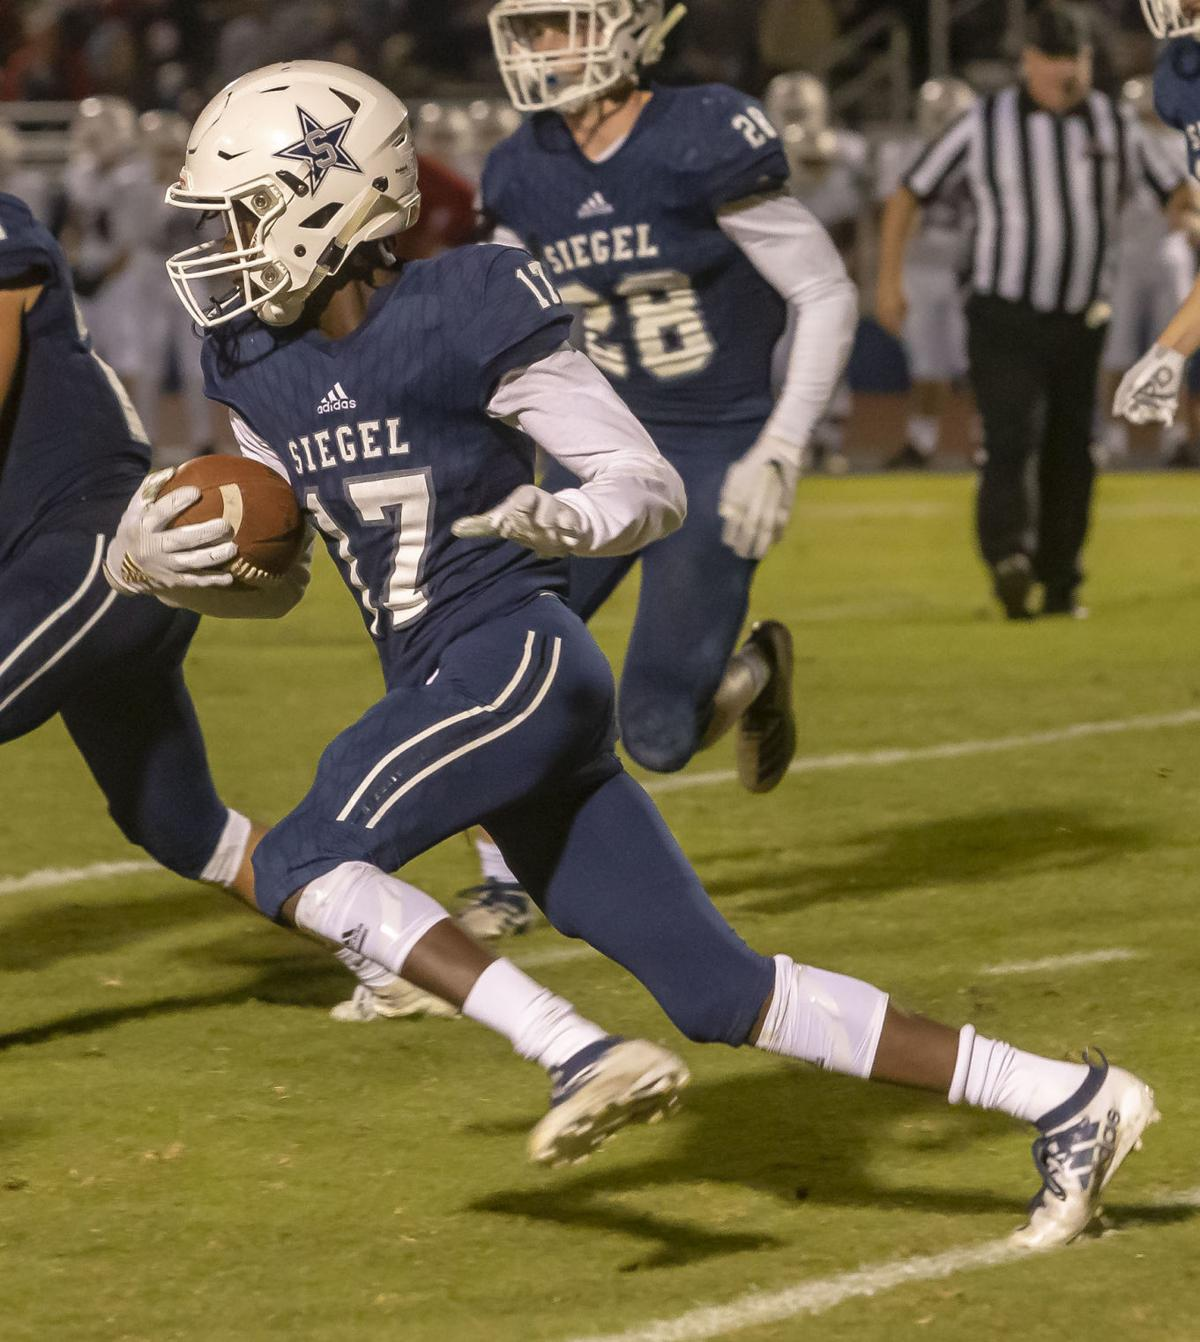 Siegel rally comes up short in 35-28 loss to Cookeville